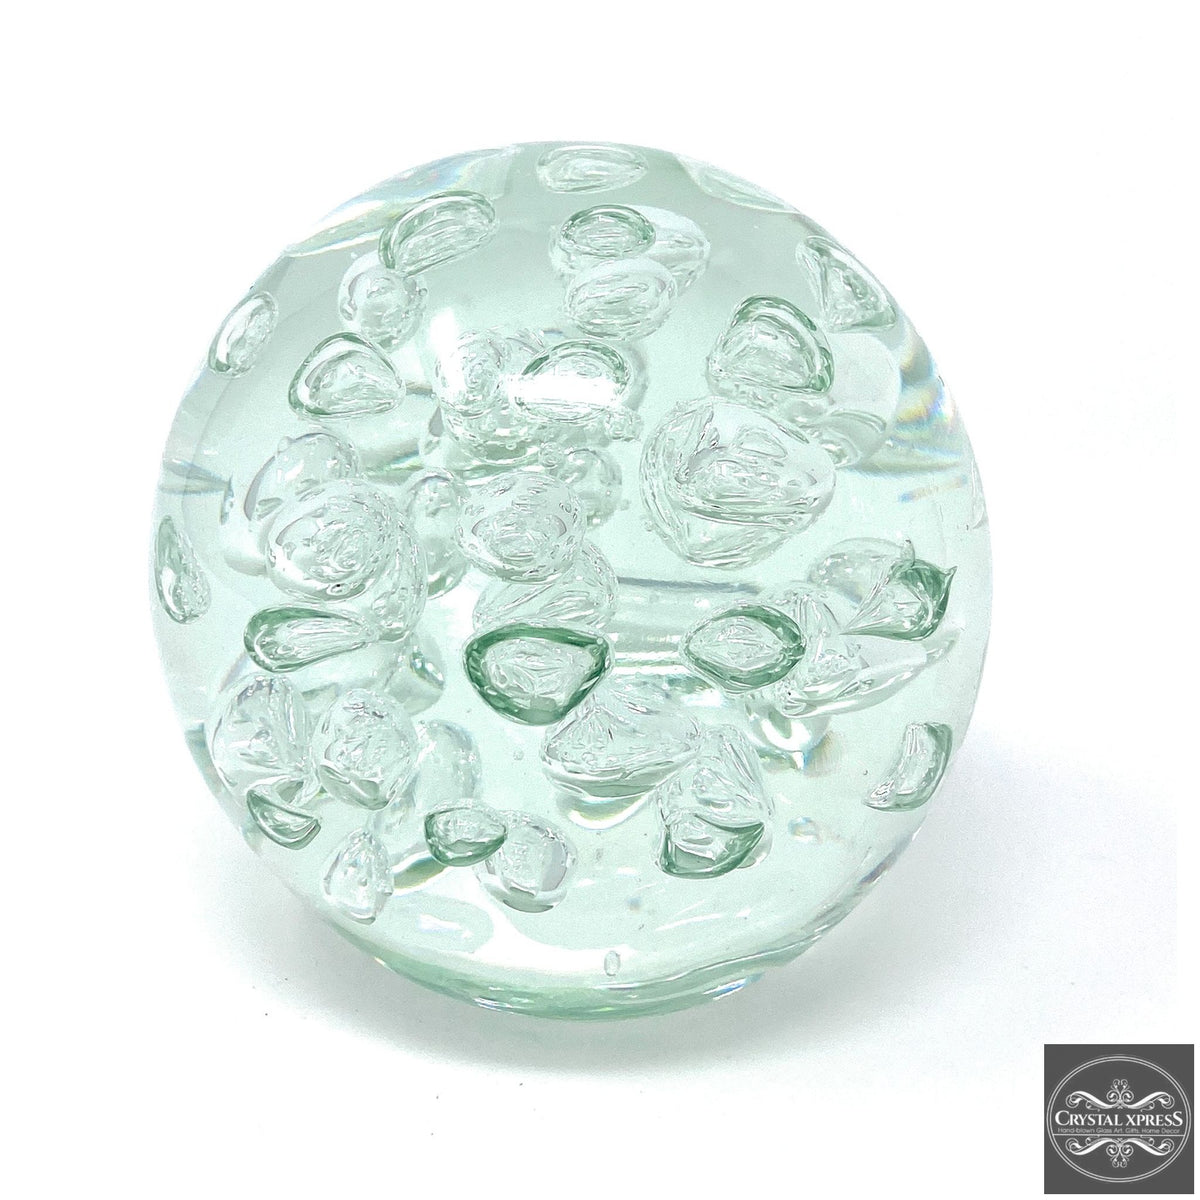 Clear White Glass Paperweight 5.5 inchCrystal Xpress